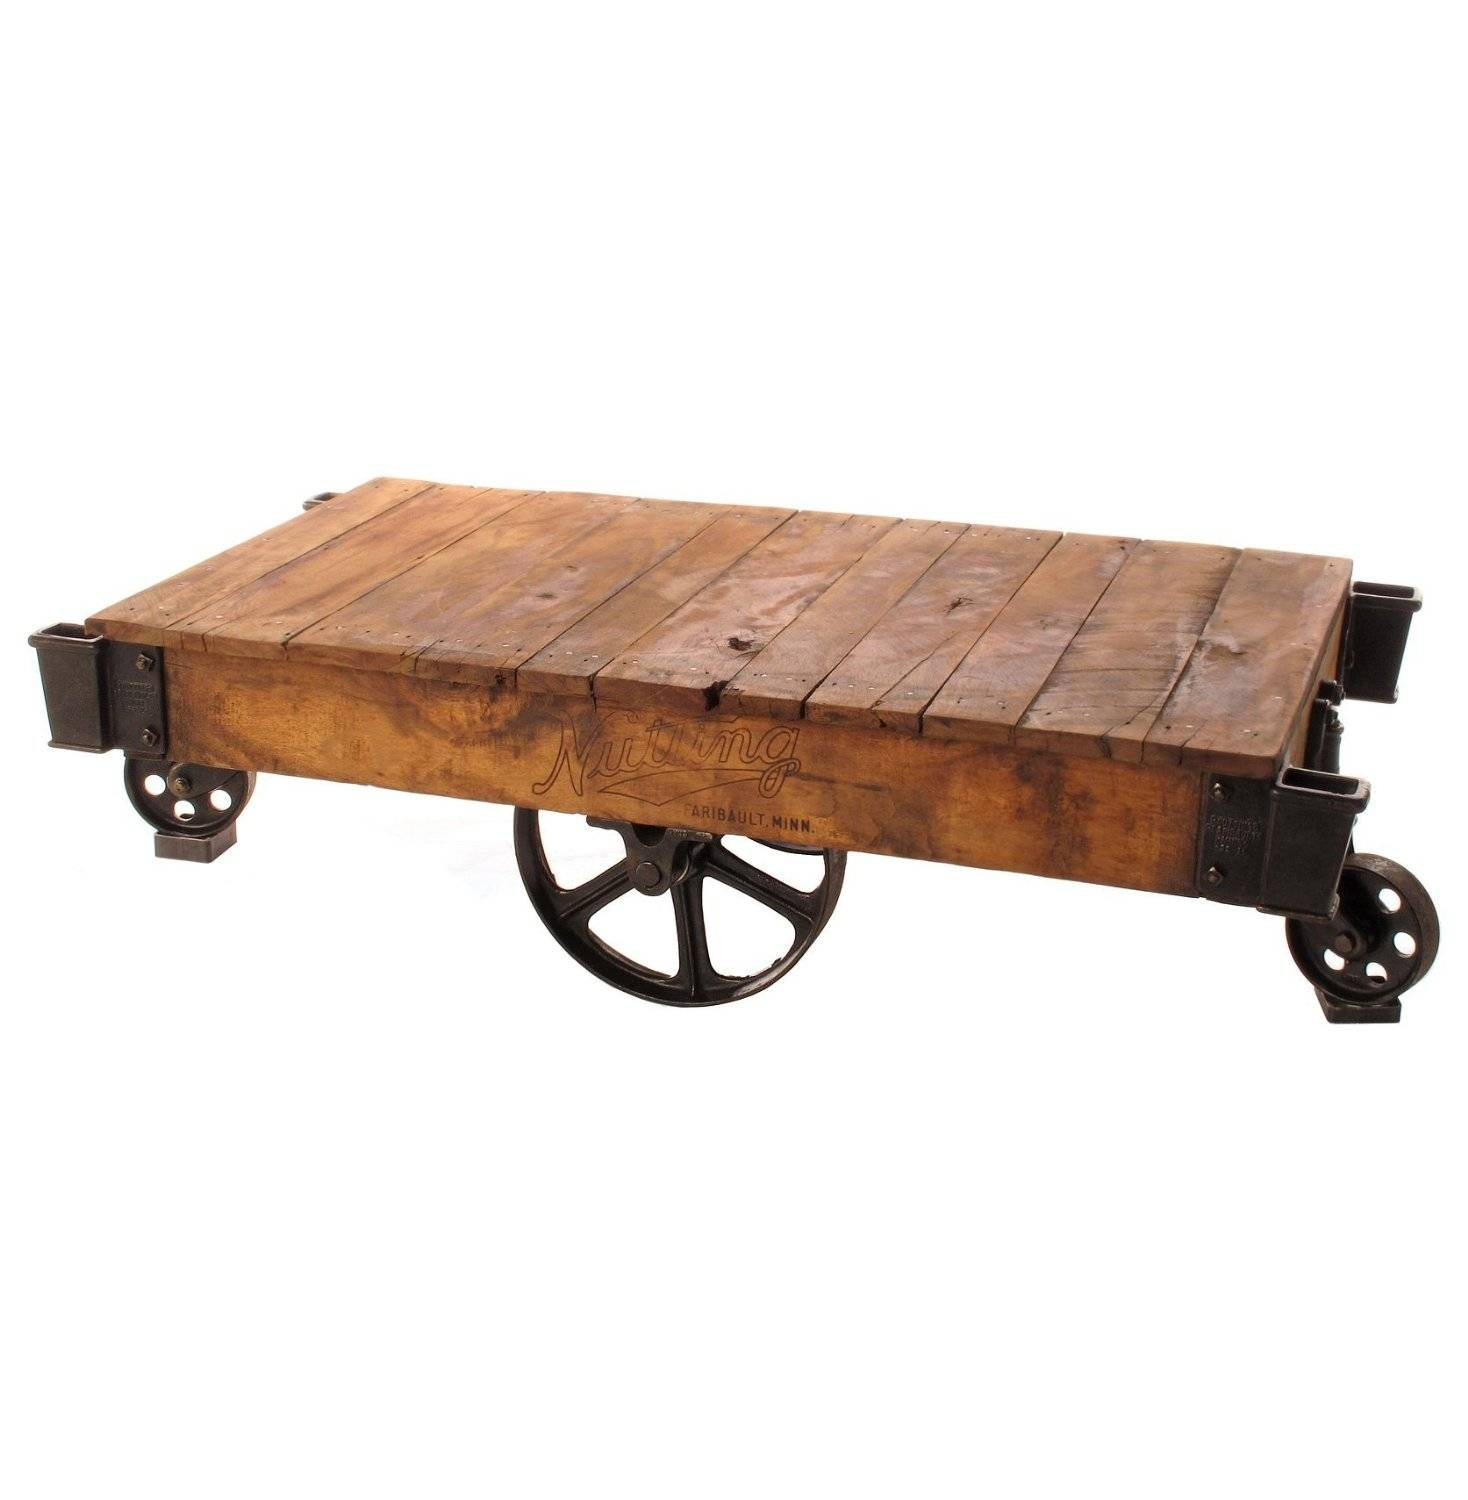 Industrial Style Coffee Table With Wheels | Coffee Tables Decoration regarding Coffee Tables With Wheels (Image 25 of 30)